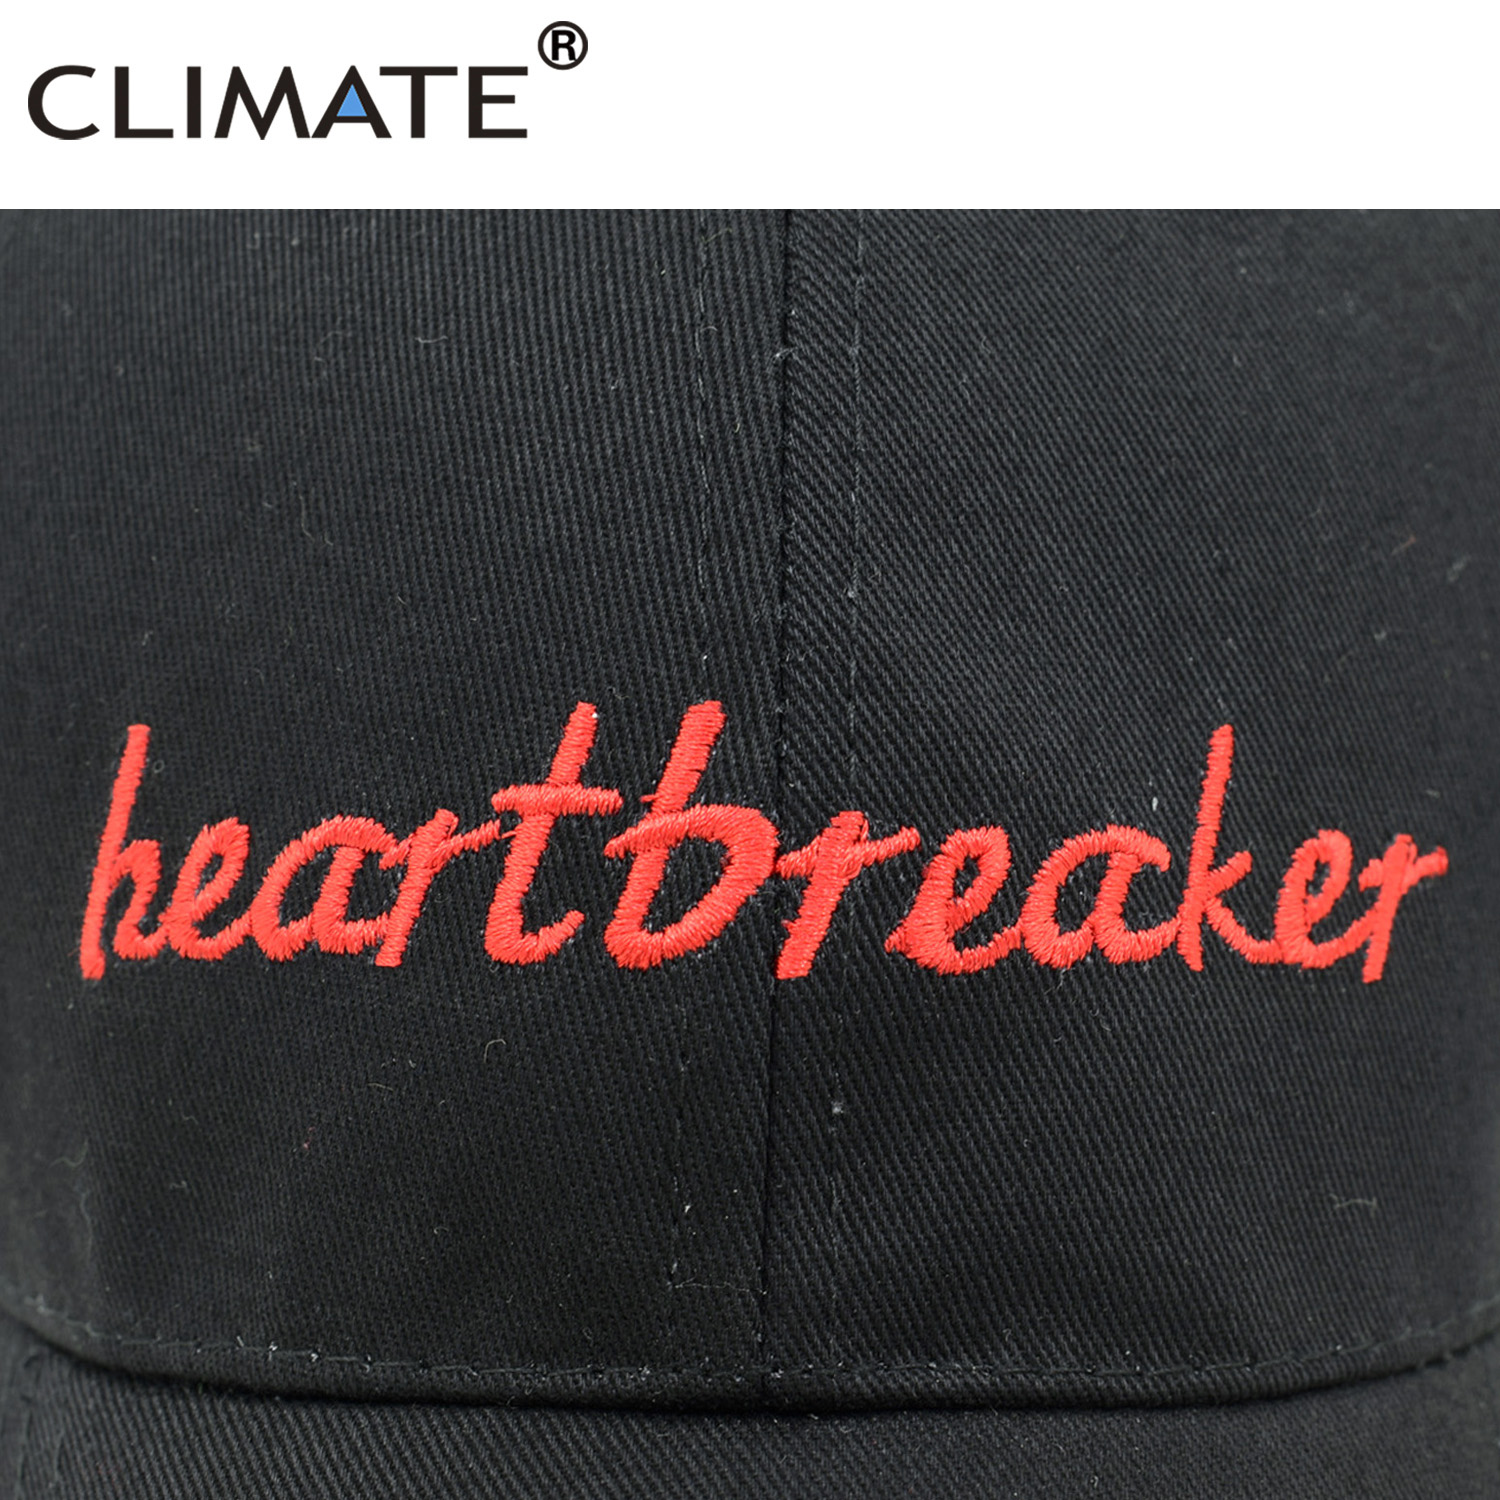 027dc7ef7 CLIMATE Women Men Heartbreaker Baseball Caps Black Dad Hat Cap Heart  Breaker Youth Cool Cotton Baseball Trucker Caps Hat Girl